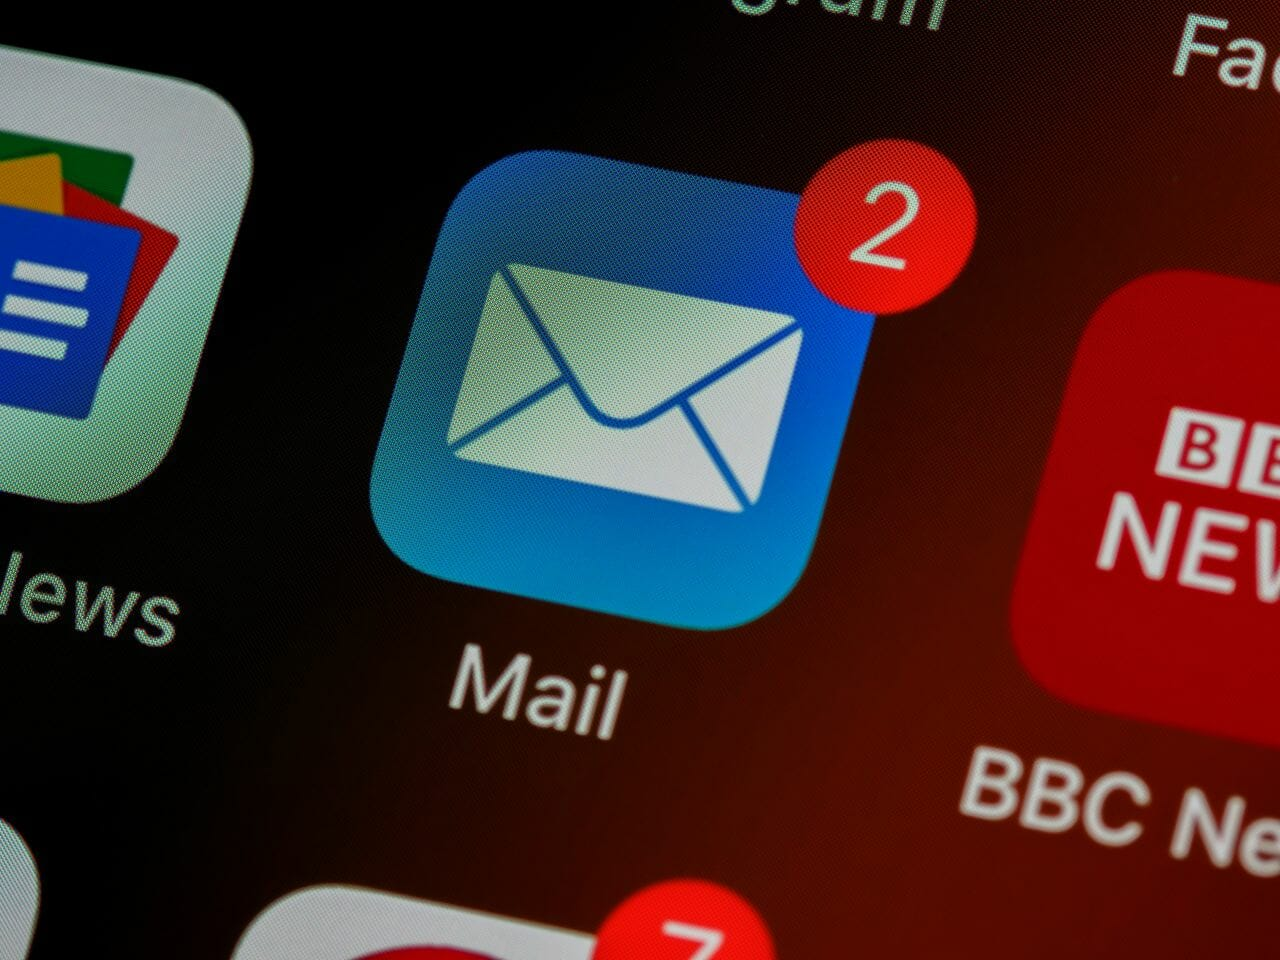 An image of an email icon on an iPhone to supplement an article about service by email for lawyers in England and Wales.